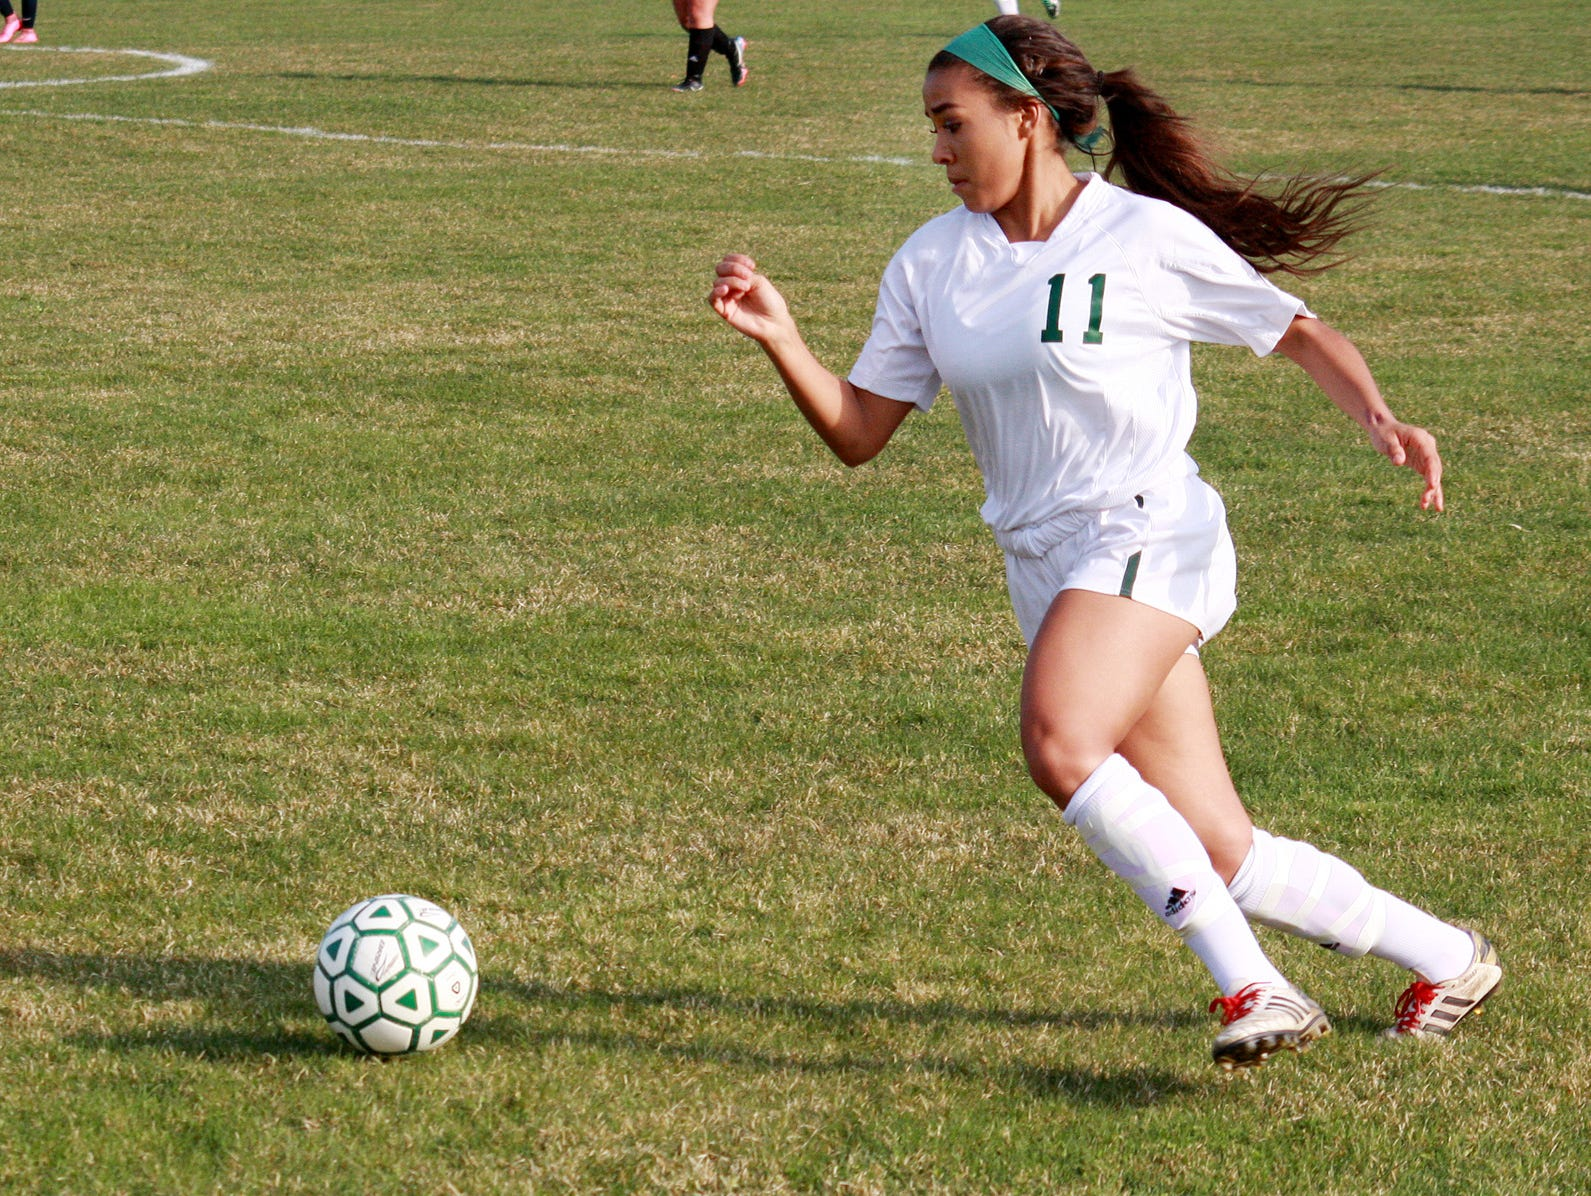 Pennfield's Sonata Beasley takes the ball downfield to score the first goal of the game in action earlier this season.